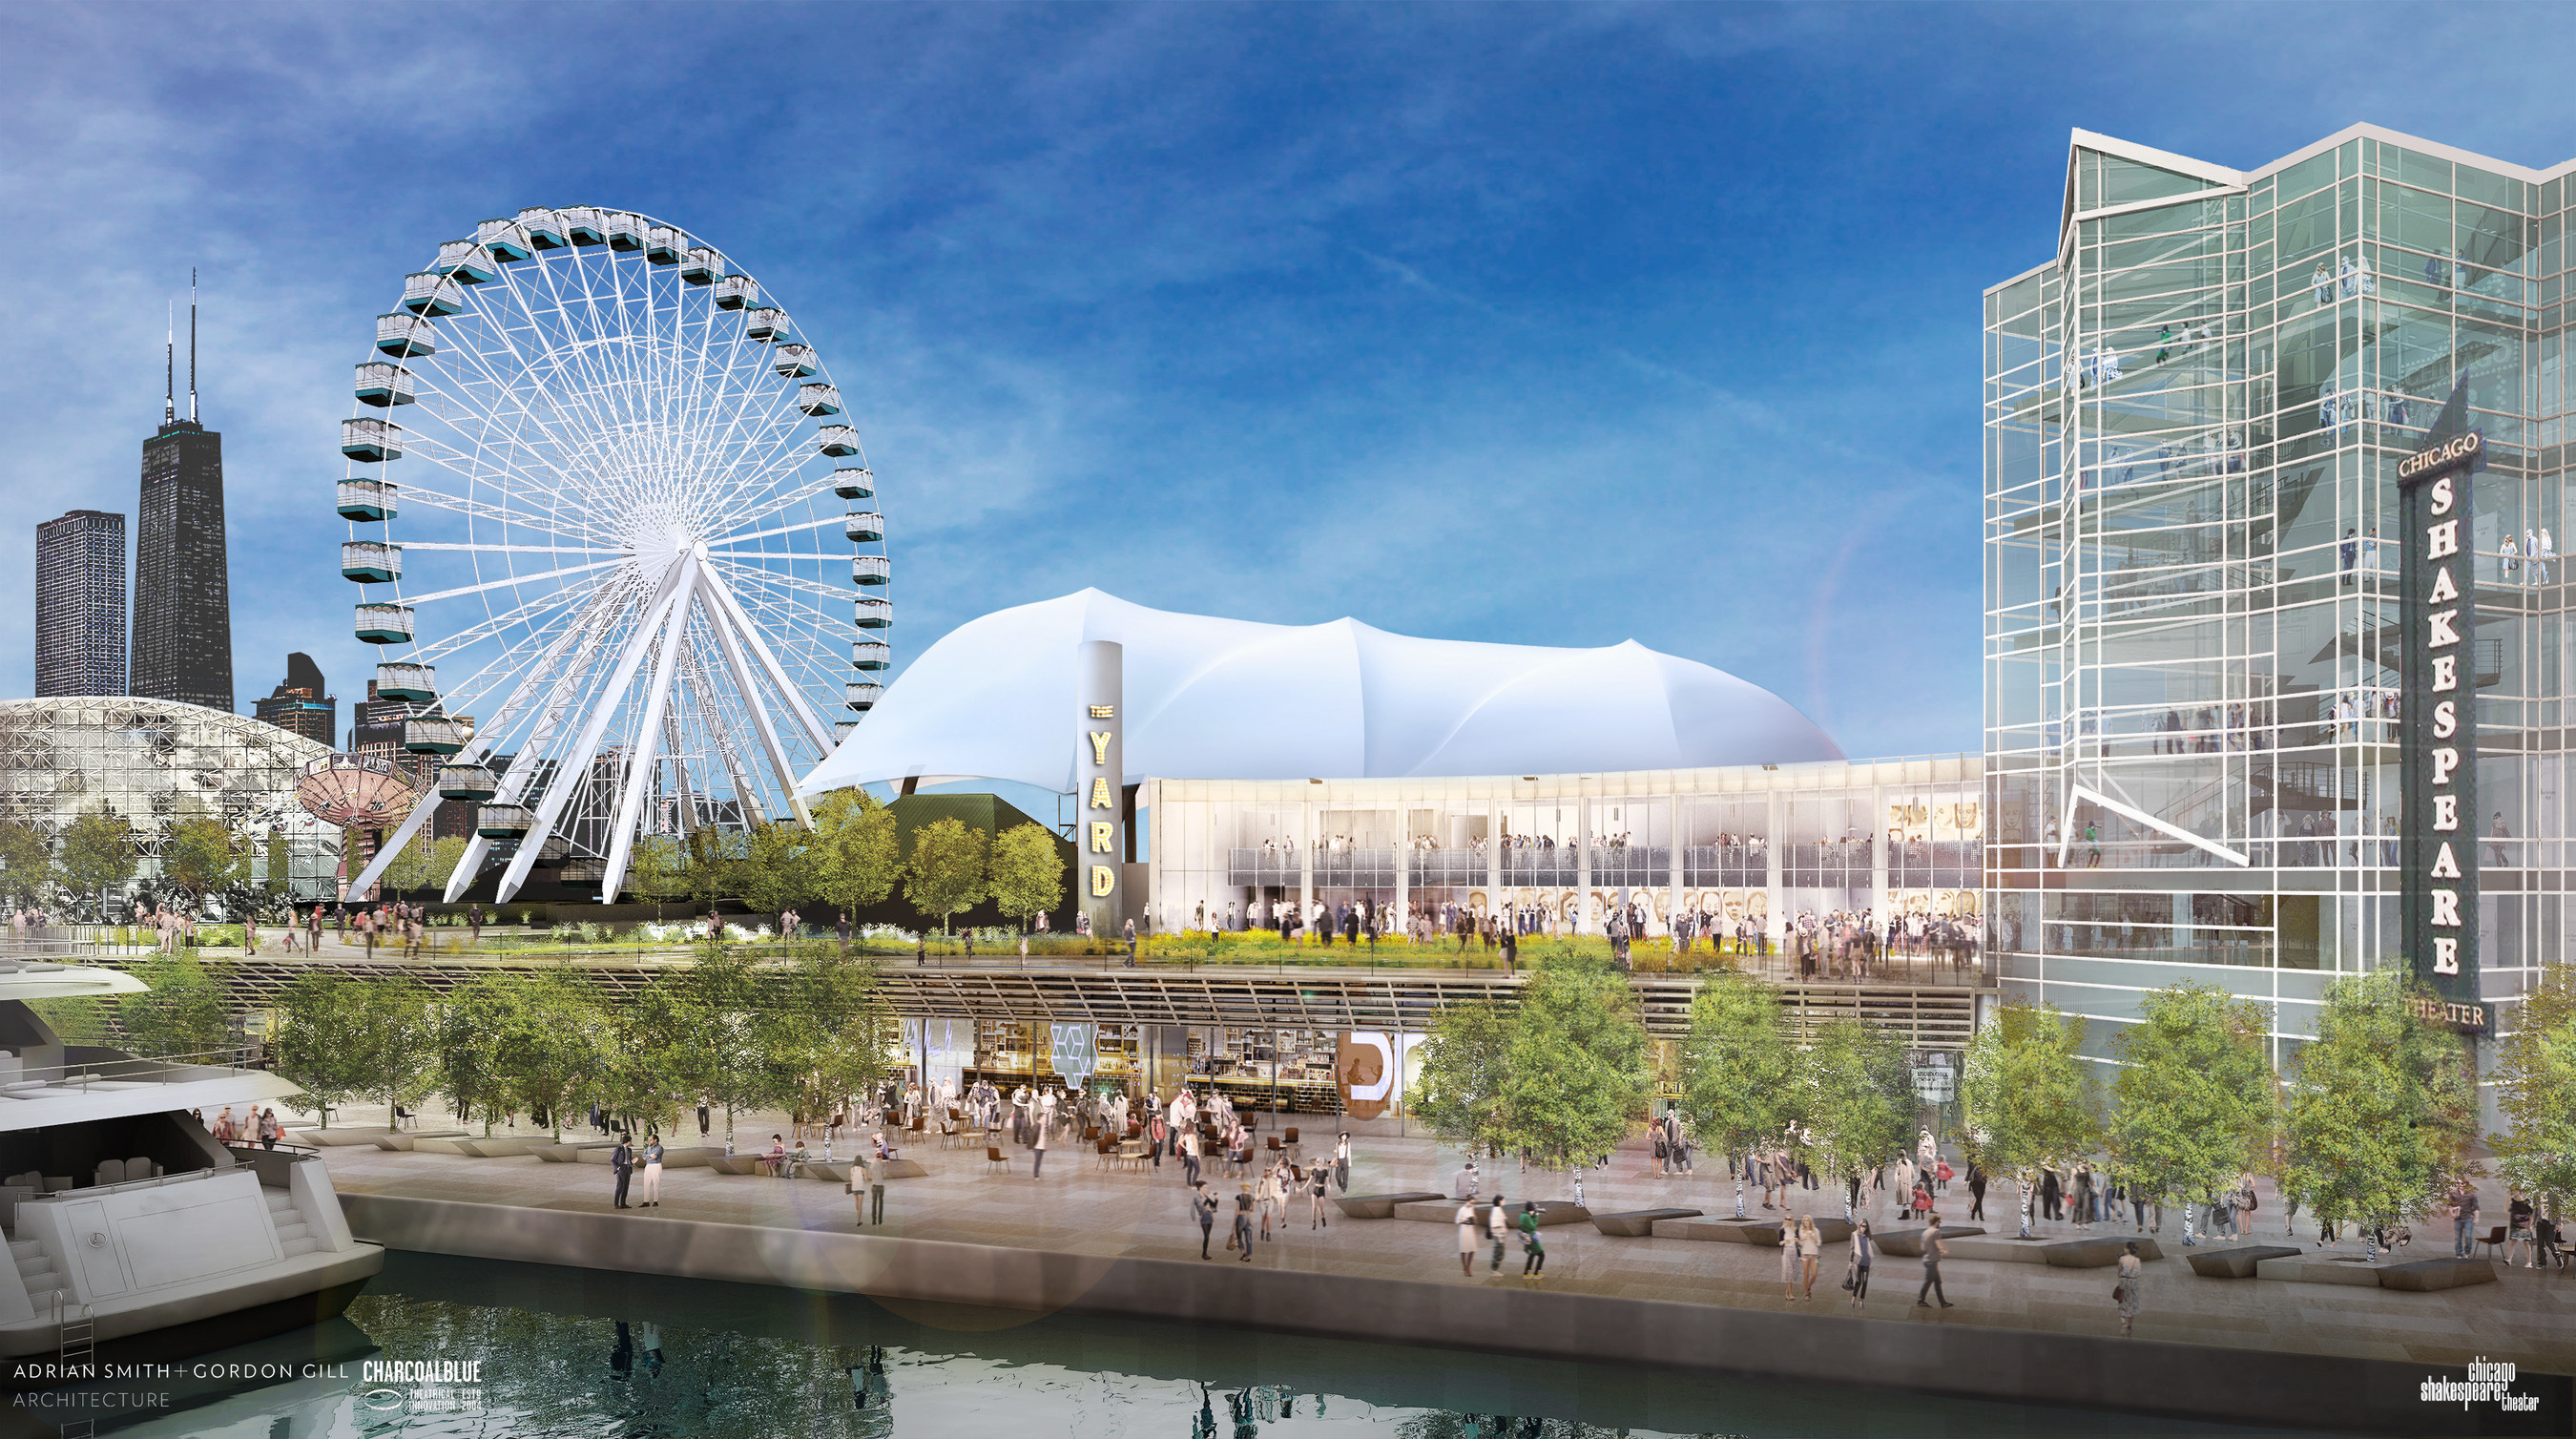 Chicago Shakespeare Theater and Navy Pier, Inc announce plans for an innovative, bold theater space: The Yard ...